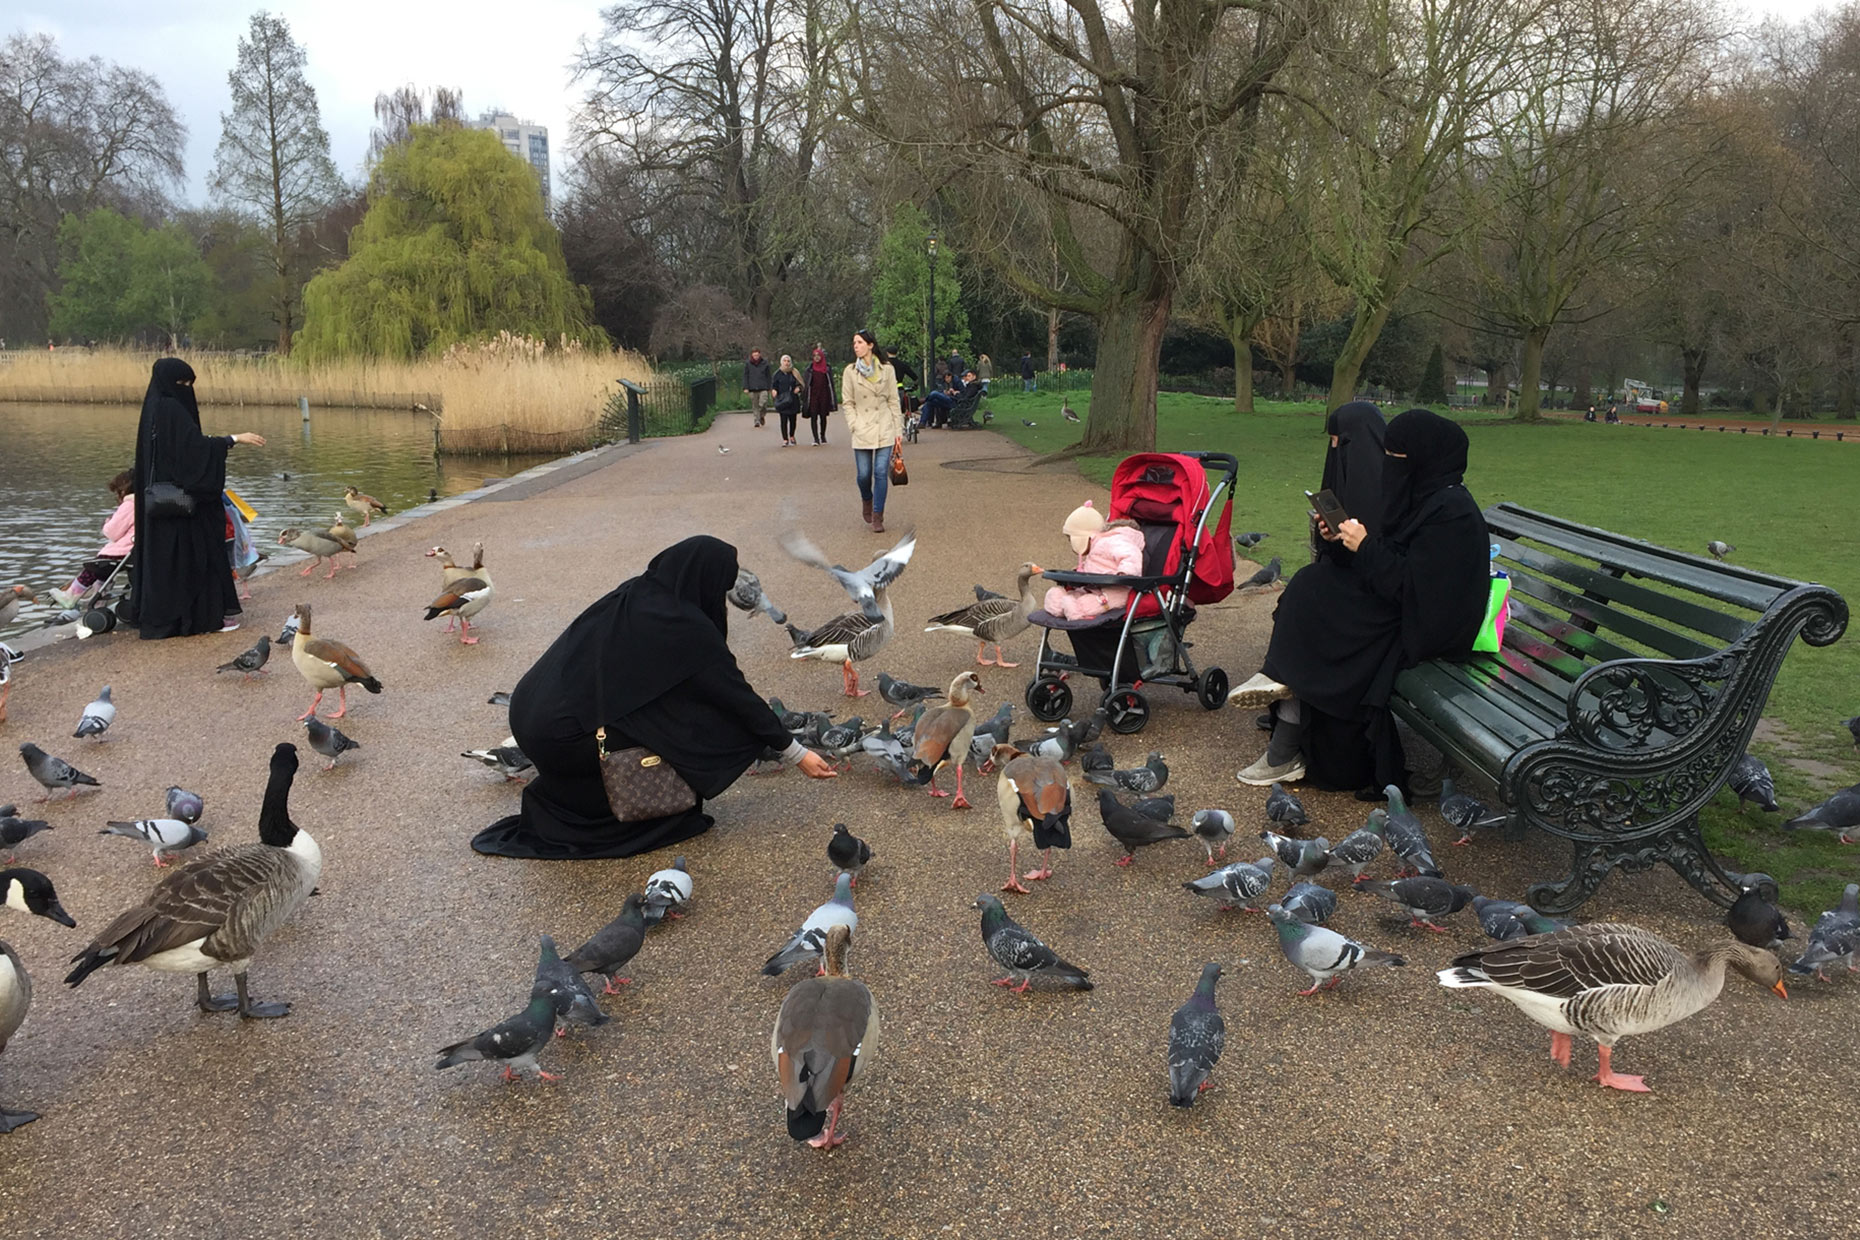 Hyde-Park-London-England-Travel-Photography-Caryn-B-Davis